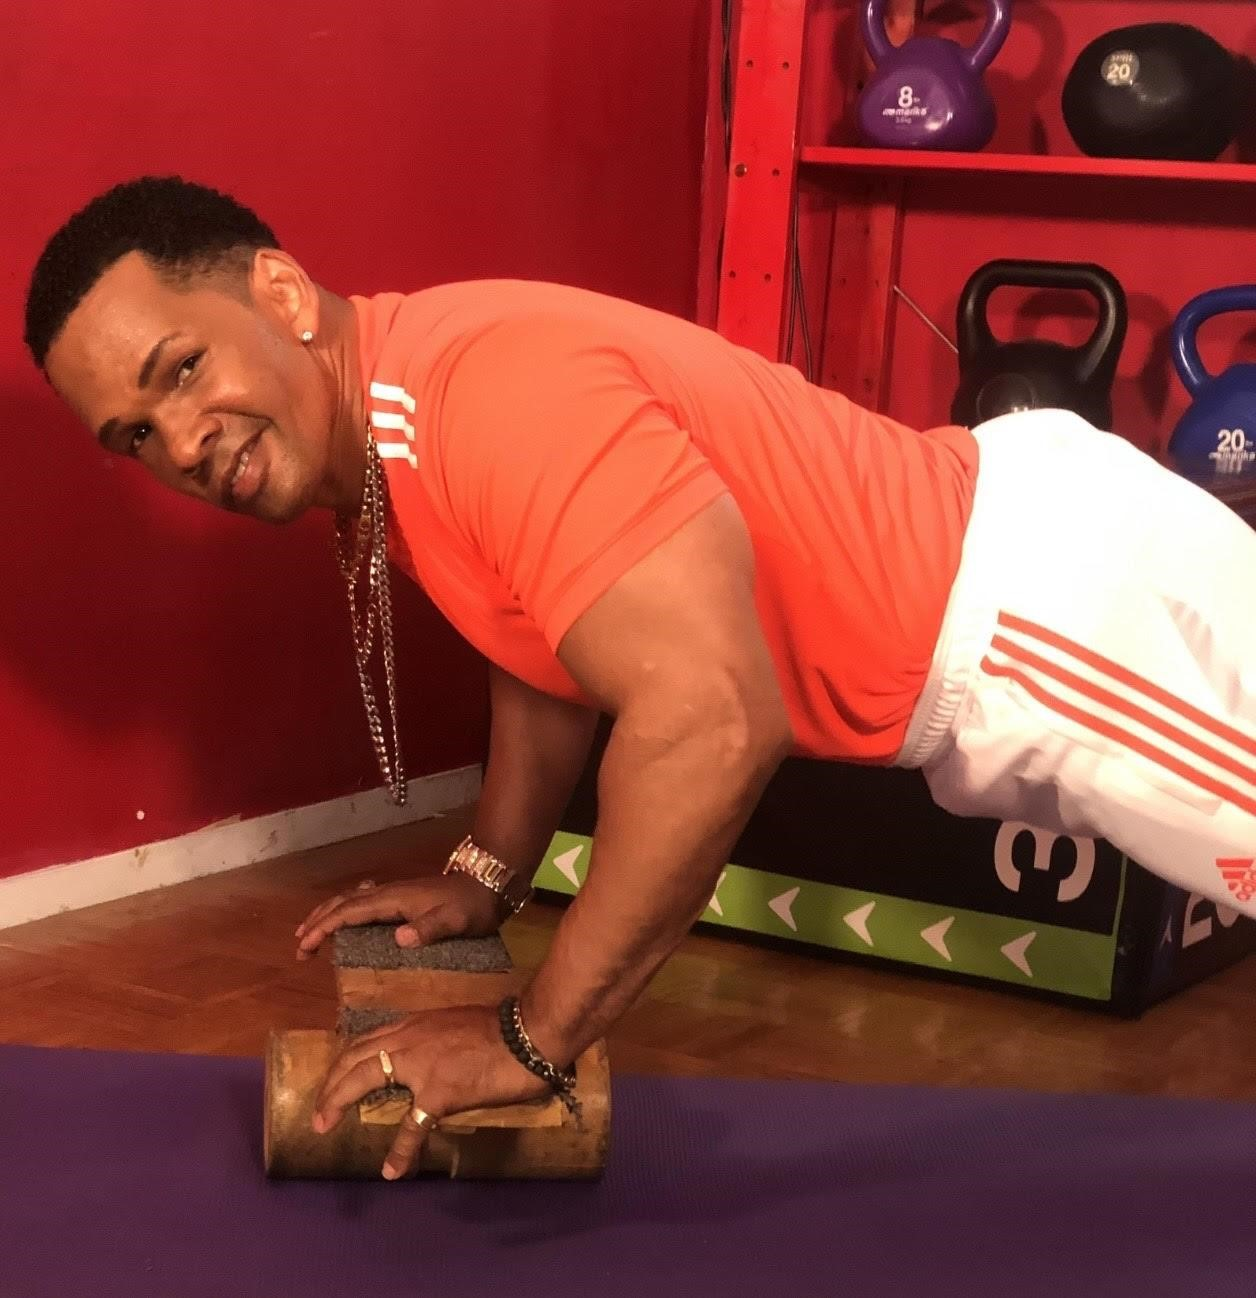 Lancelot Theobald Jr. Pushing Fundraising to the Limit in Bid to Surpass 75,000 Push-ups and Donate $75,000 for Homelessness